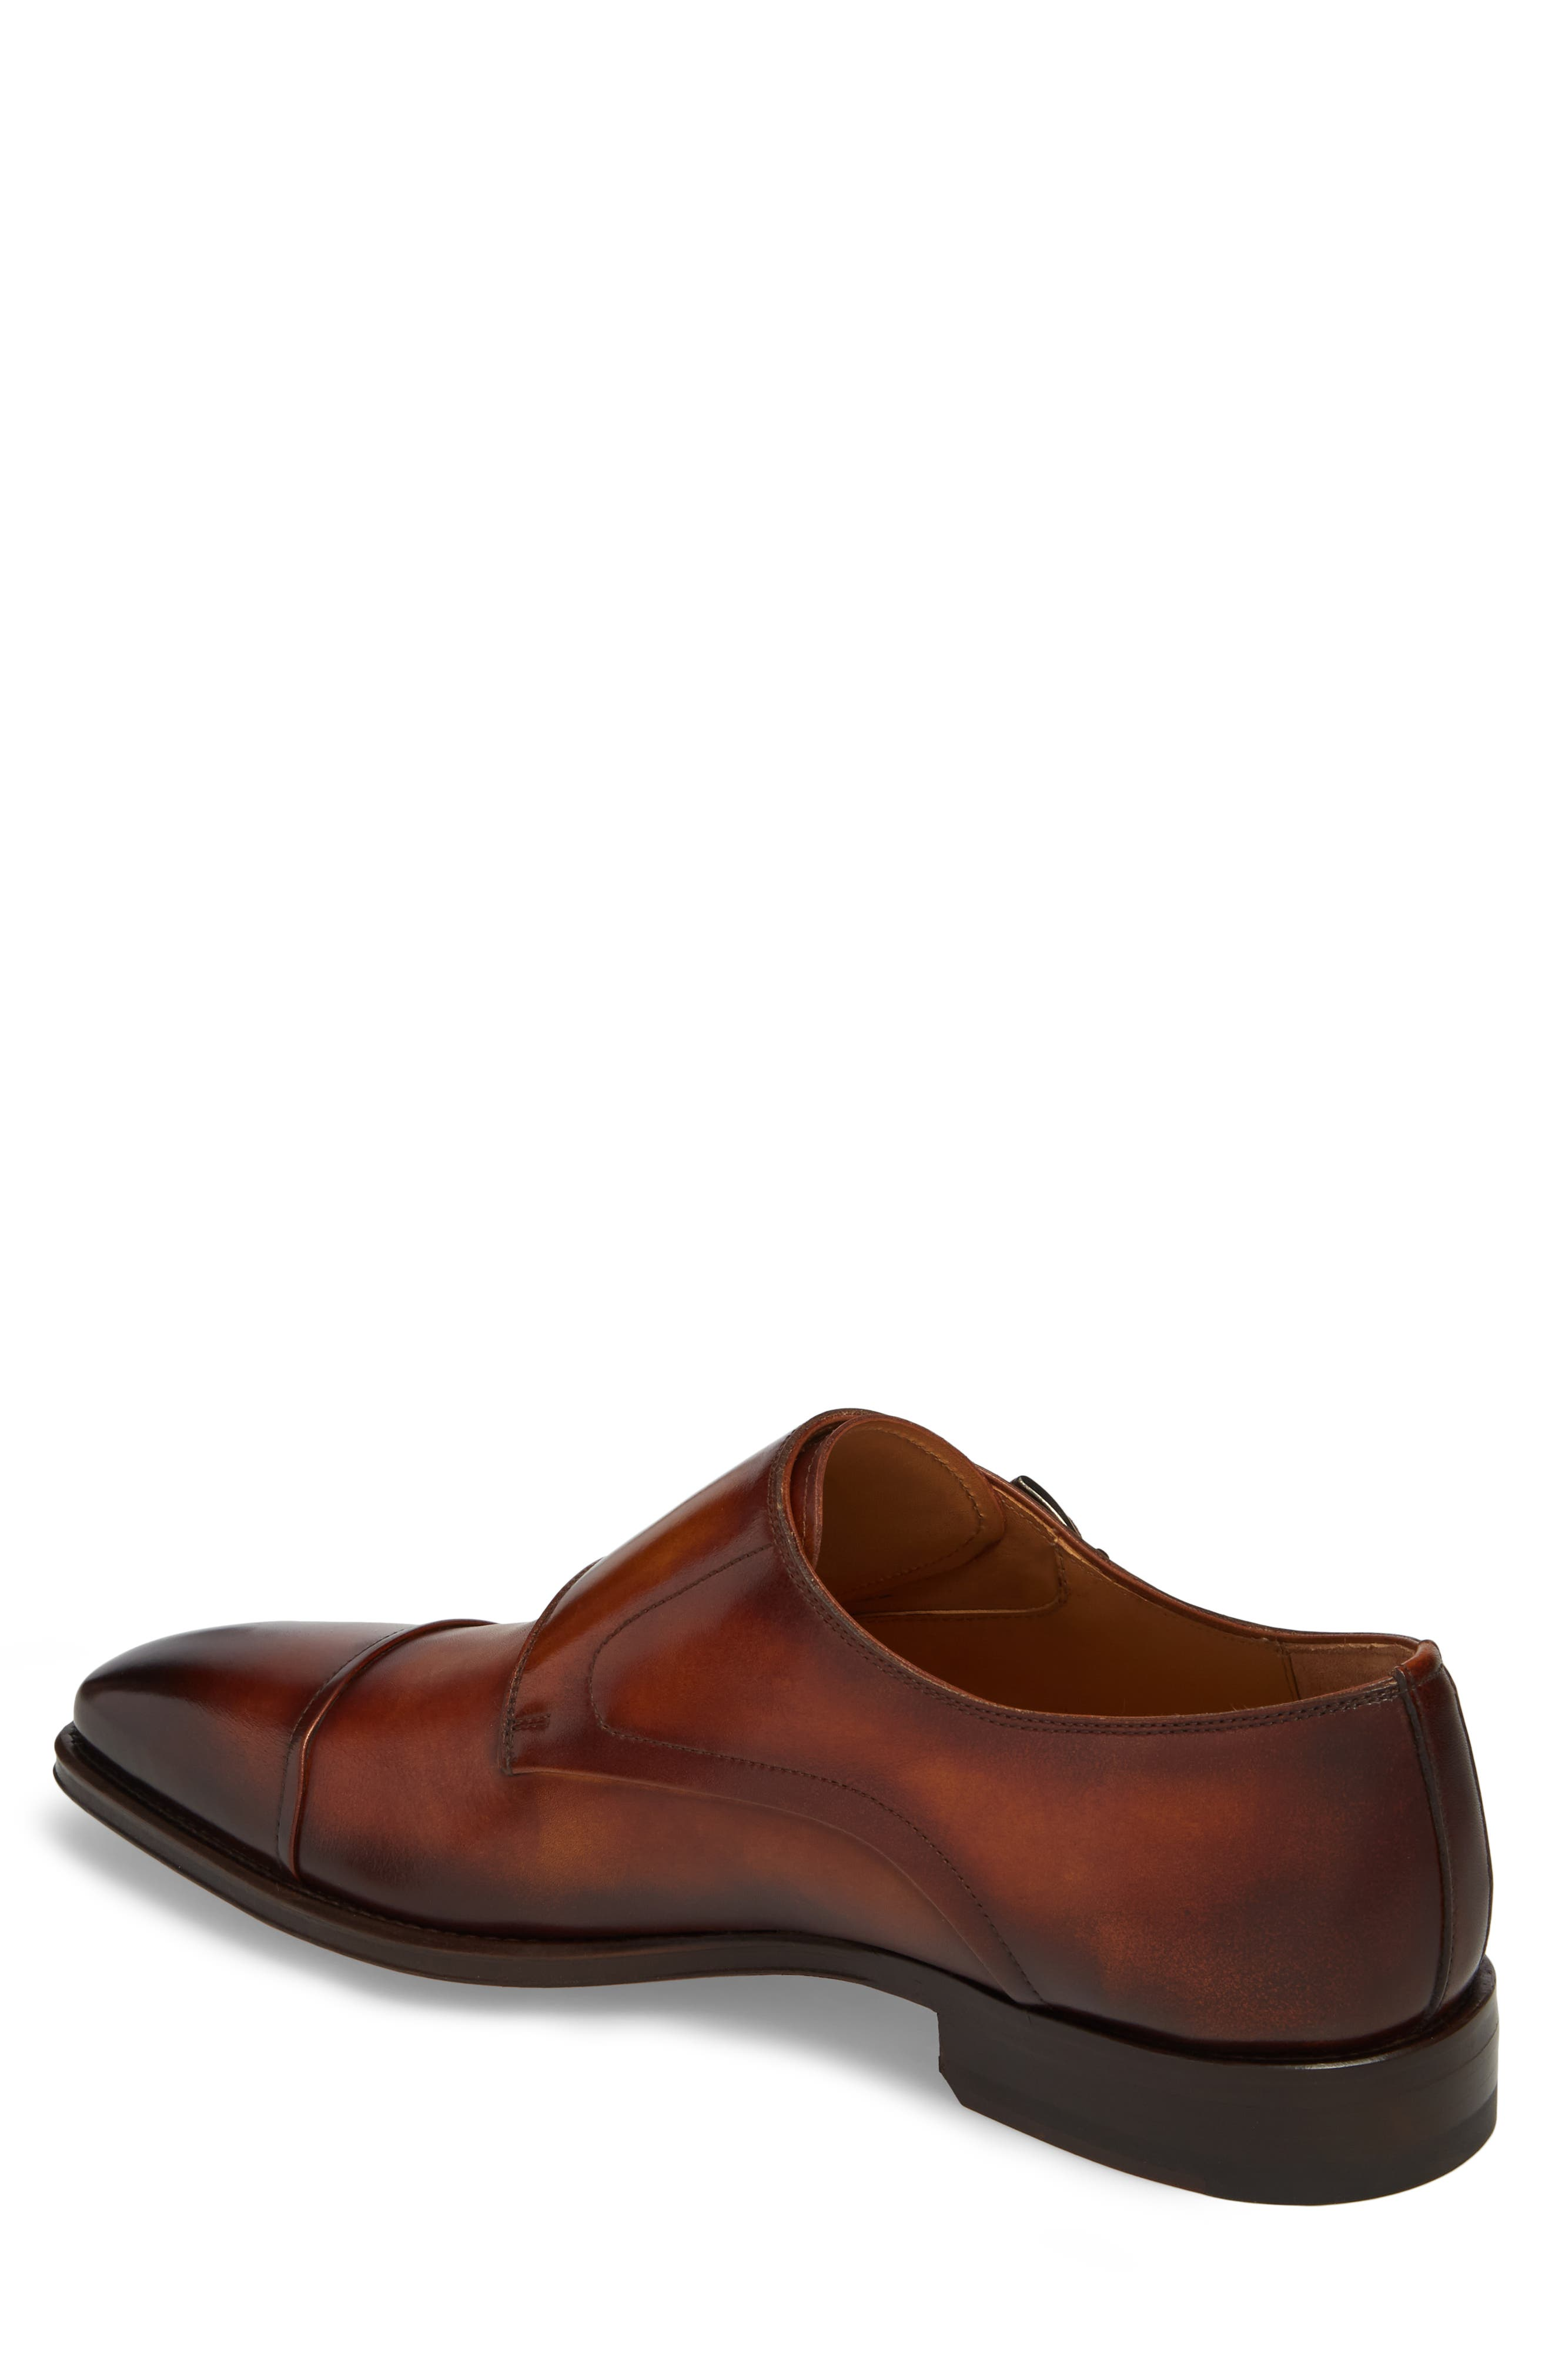 Silvio Double Monk Strap Shoe,                             Alternate thumbnail 2, color,                             230